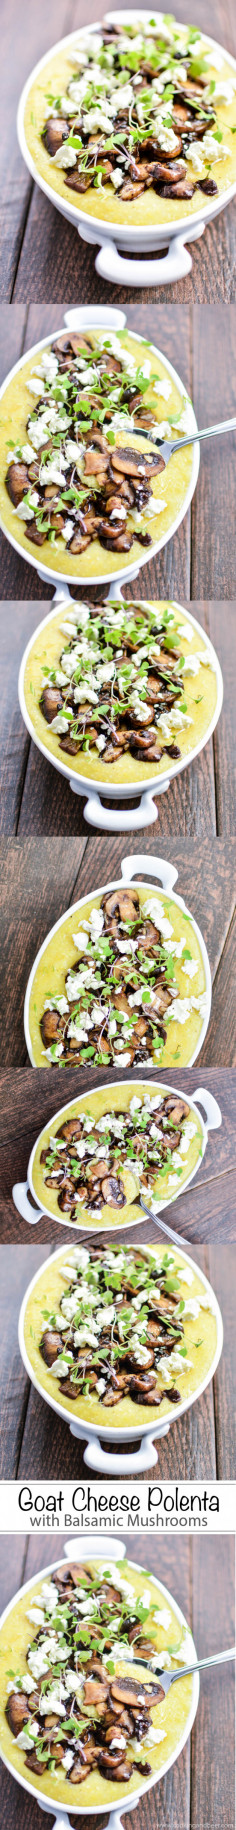 Goat Cheese Polenta with Balsamic Mushrooms